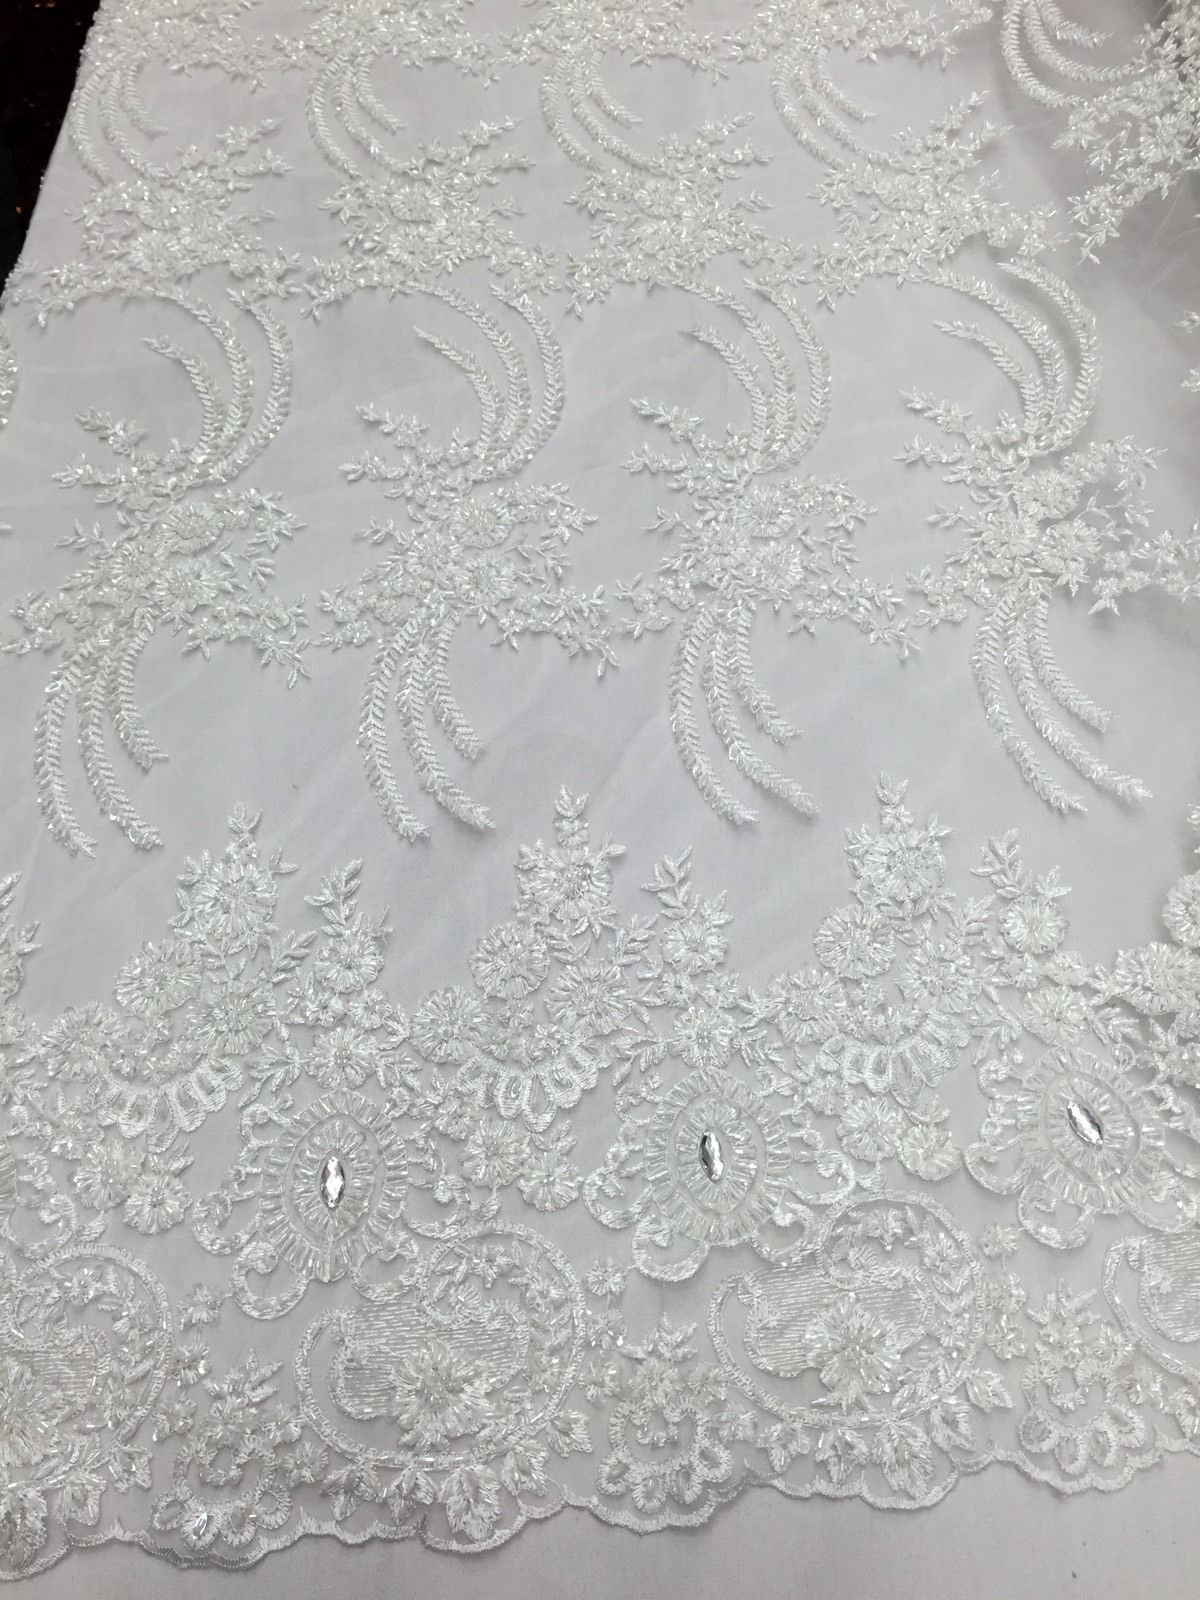 Nazareth Flower Beaded Design Mesh Lace Bridal Wedding White. Sold By The Yard - KINGDOM OF FABRICS